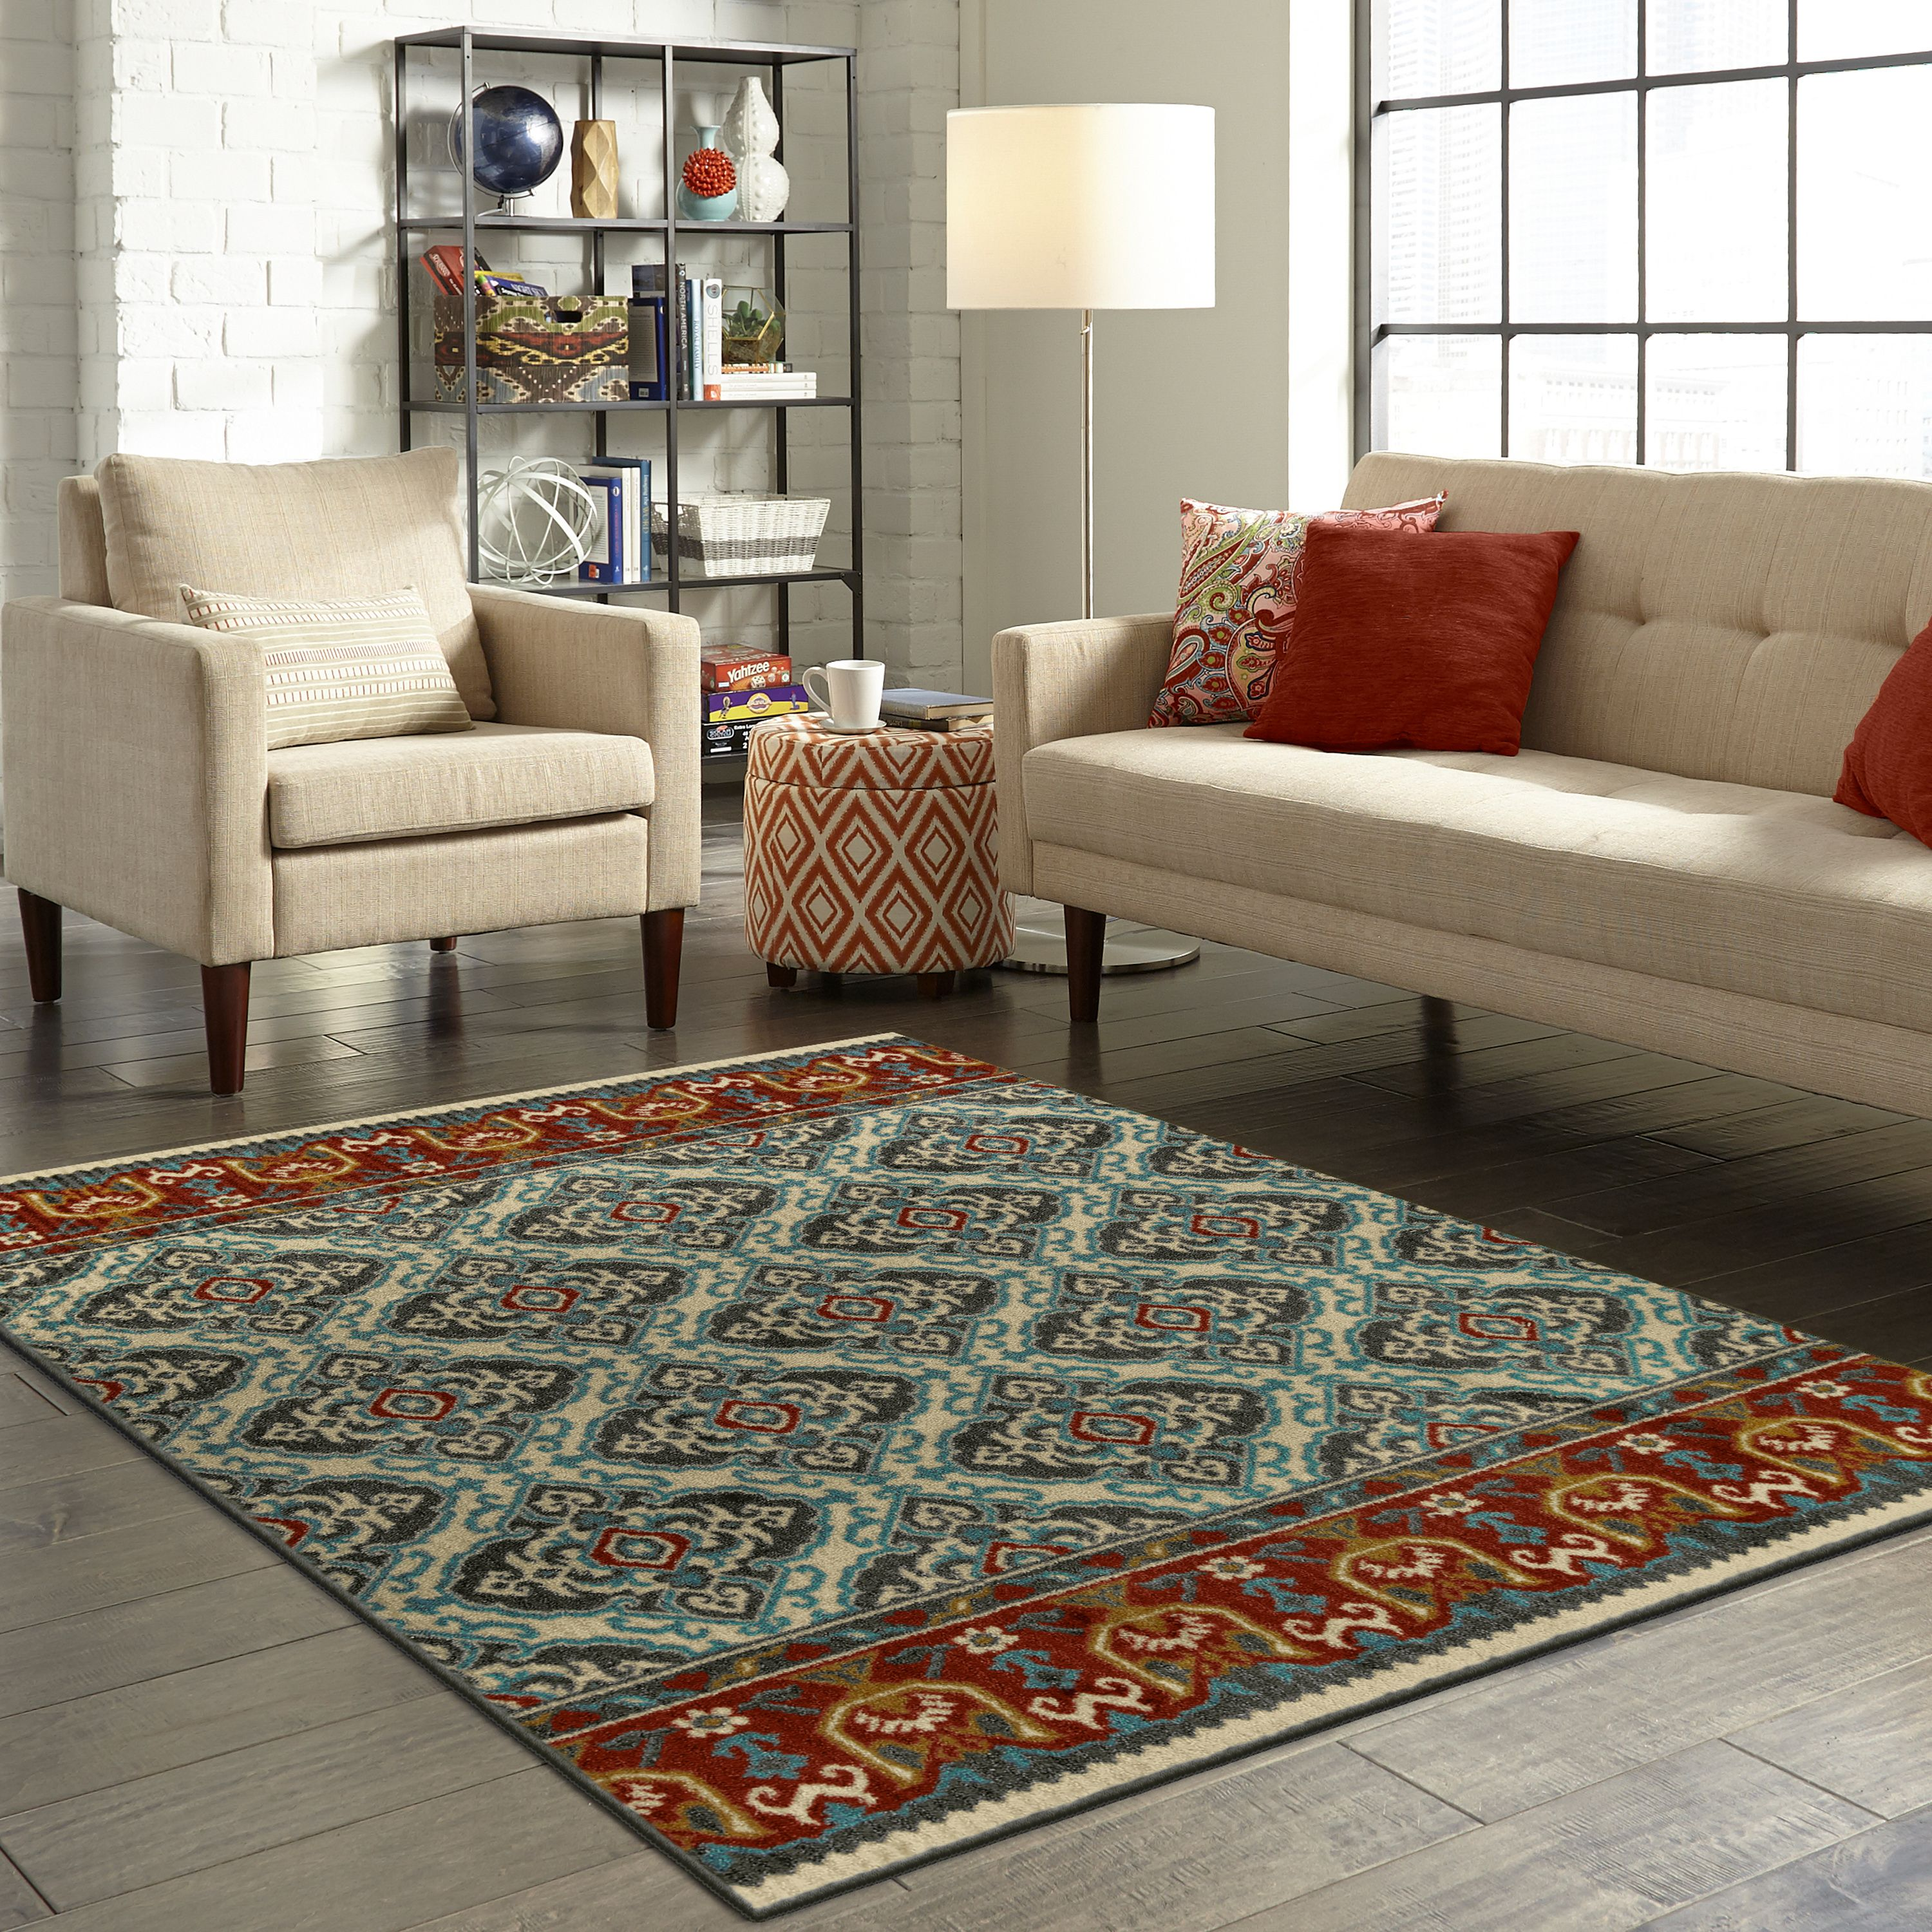 living room area rugs. Better Homes And Gardens Jakarta Traditional Scroll Living Room Area Rug Or Runner Rugs